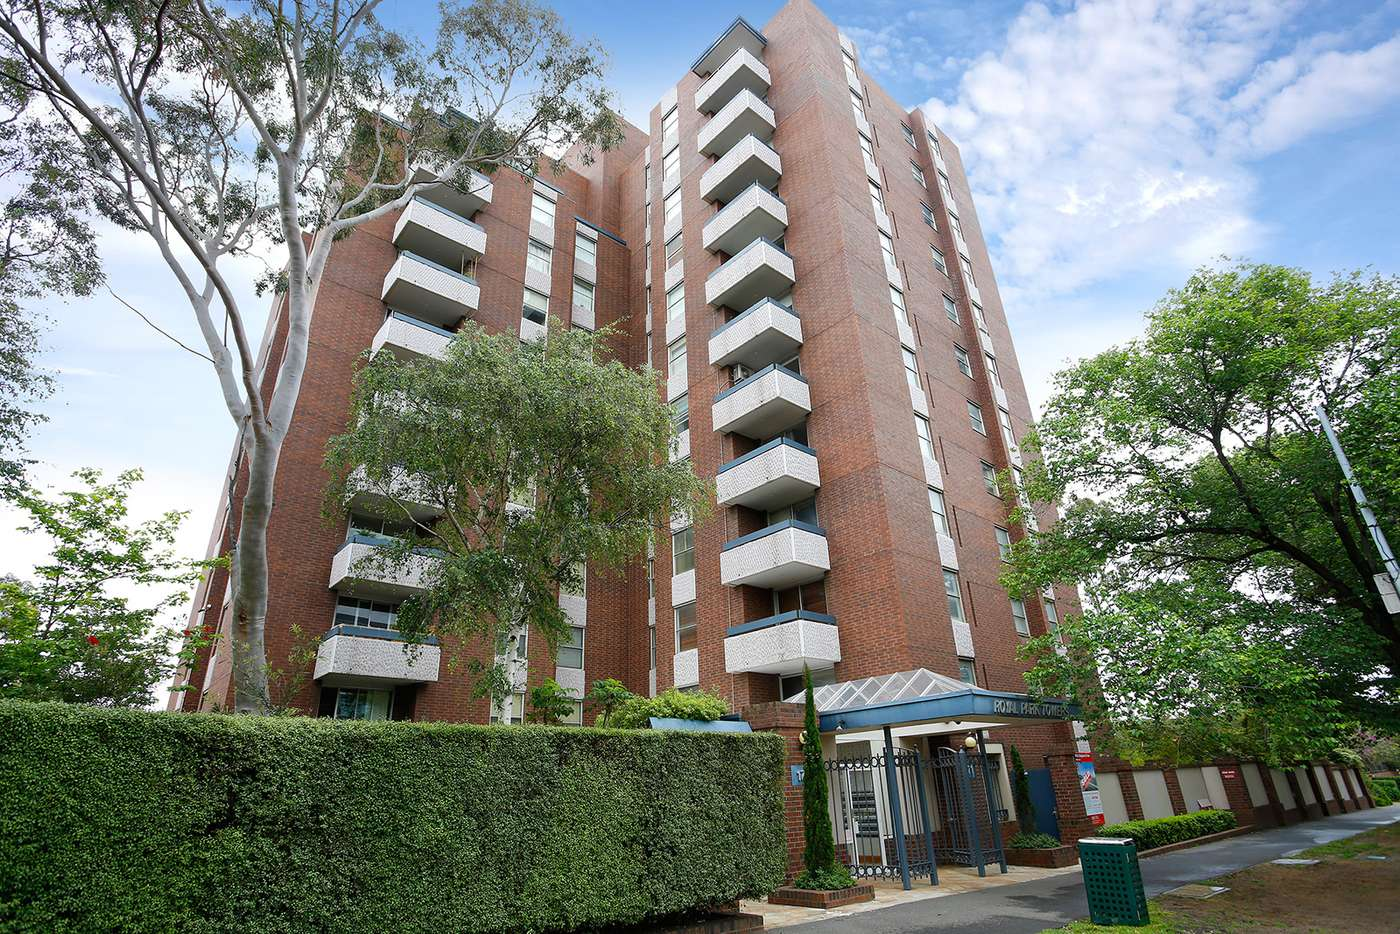 Main view of Homely apartment listing, 46/171 Flemington Road, North Melbourne VIC 3051